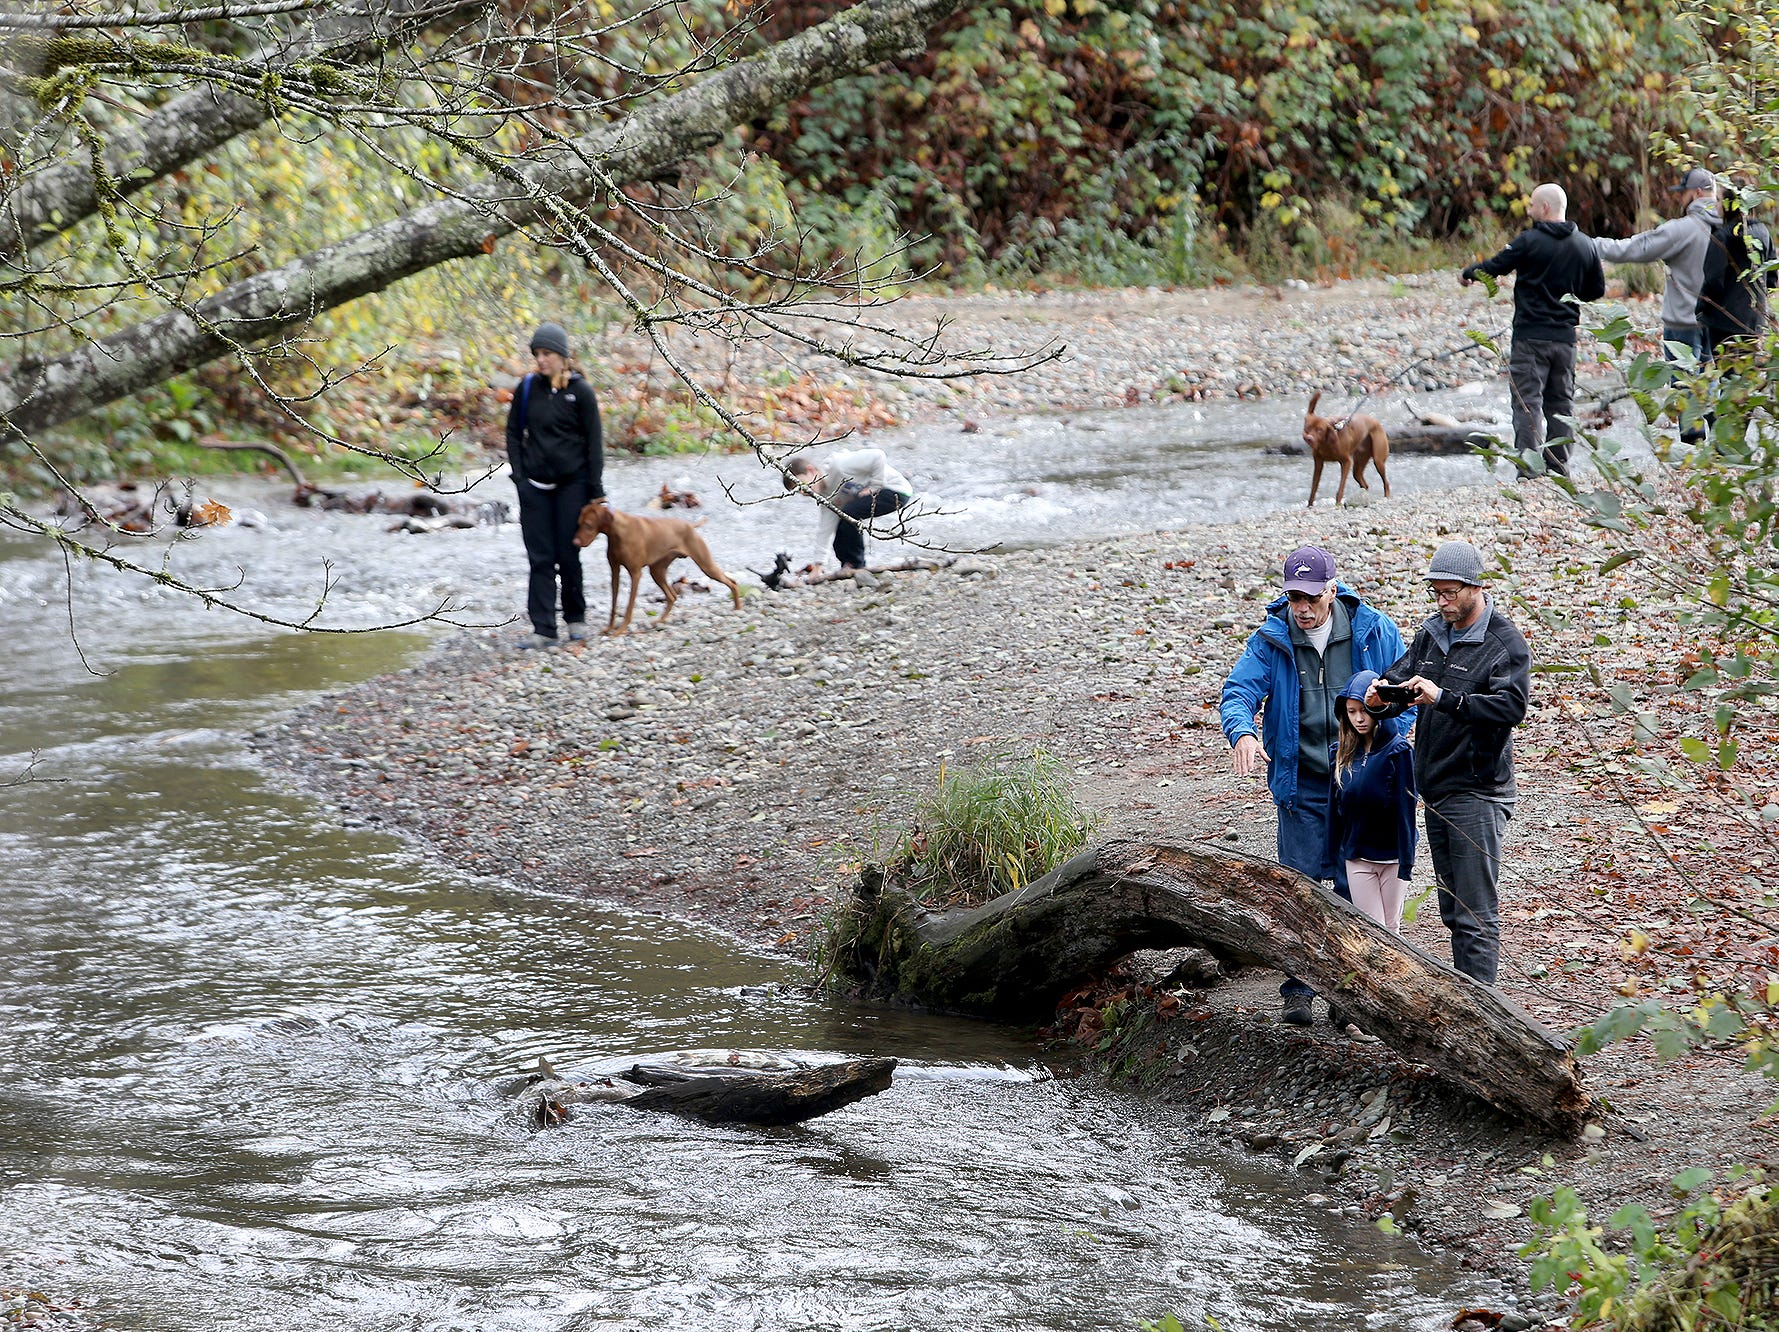 Salmon viewing at the Chico Salmon Park on Friday, November, 23, 2018. Chico Creek has finally gotten enough rain for the chum salmon to spawn.